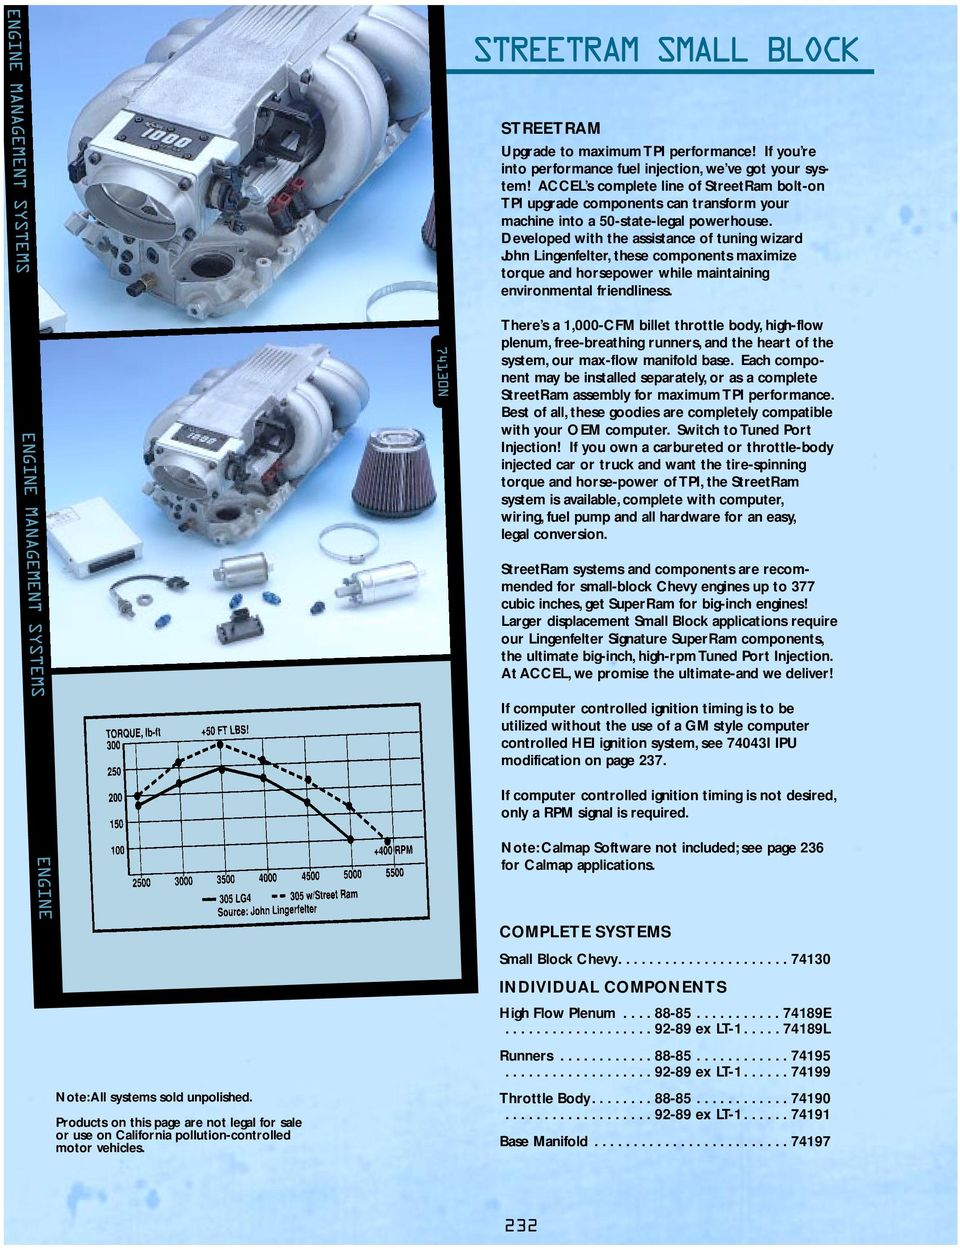 Engine Management Systems Pdf Timing A 350 Chevy Developed With The Assistance Of Tuning Wizard John Lingenfelter These Components Maximize Torque And Horsepower